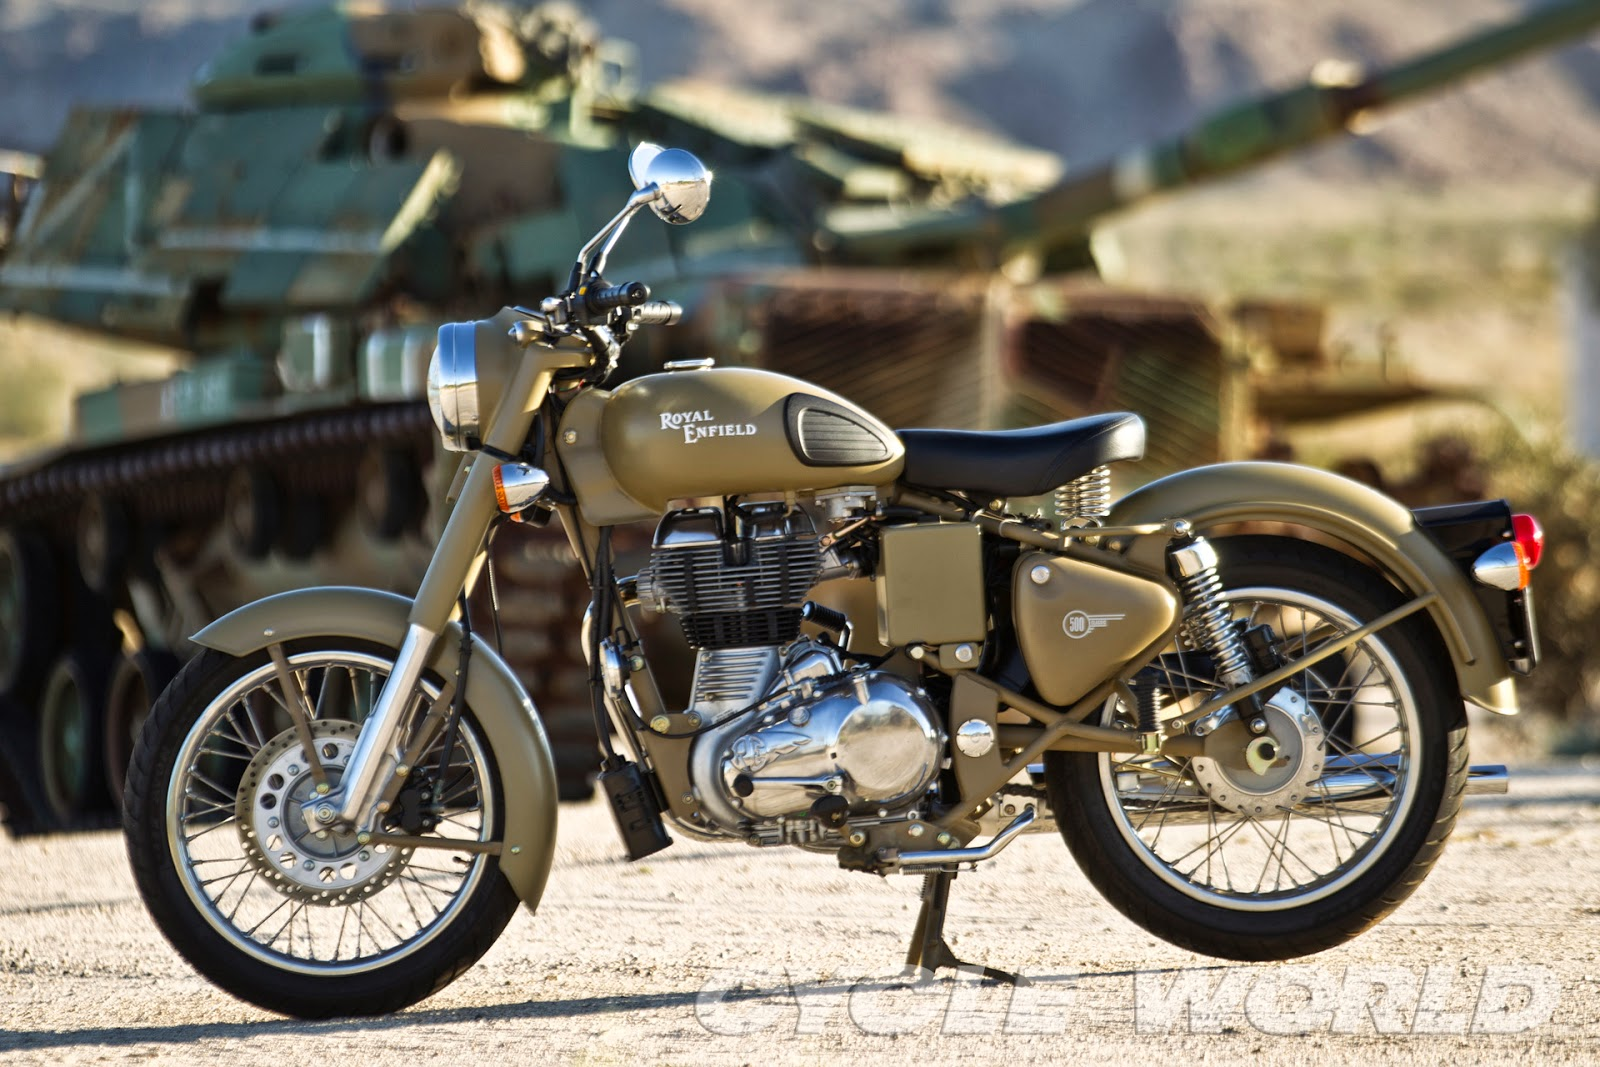 Used Honda Motorcycles >> RoyalEnfields.com: Royal Enfield Desert Storm photos with Army tanks